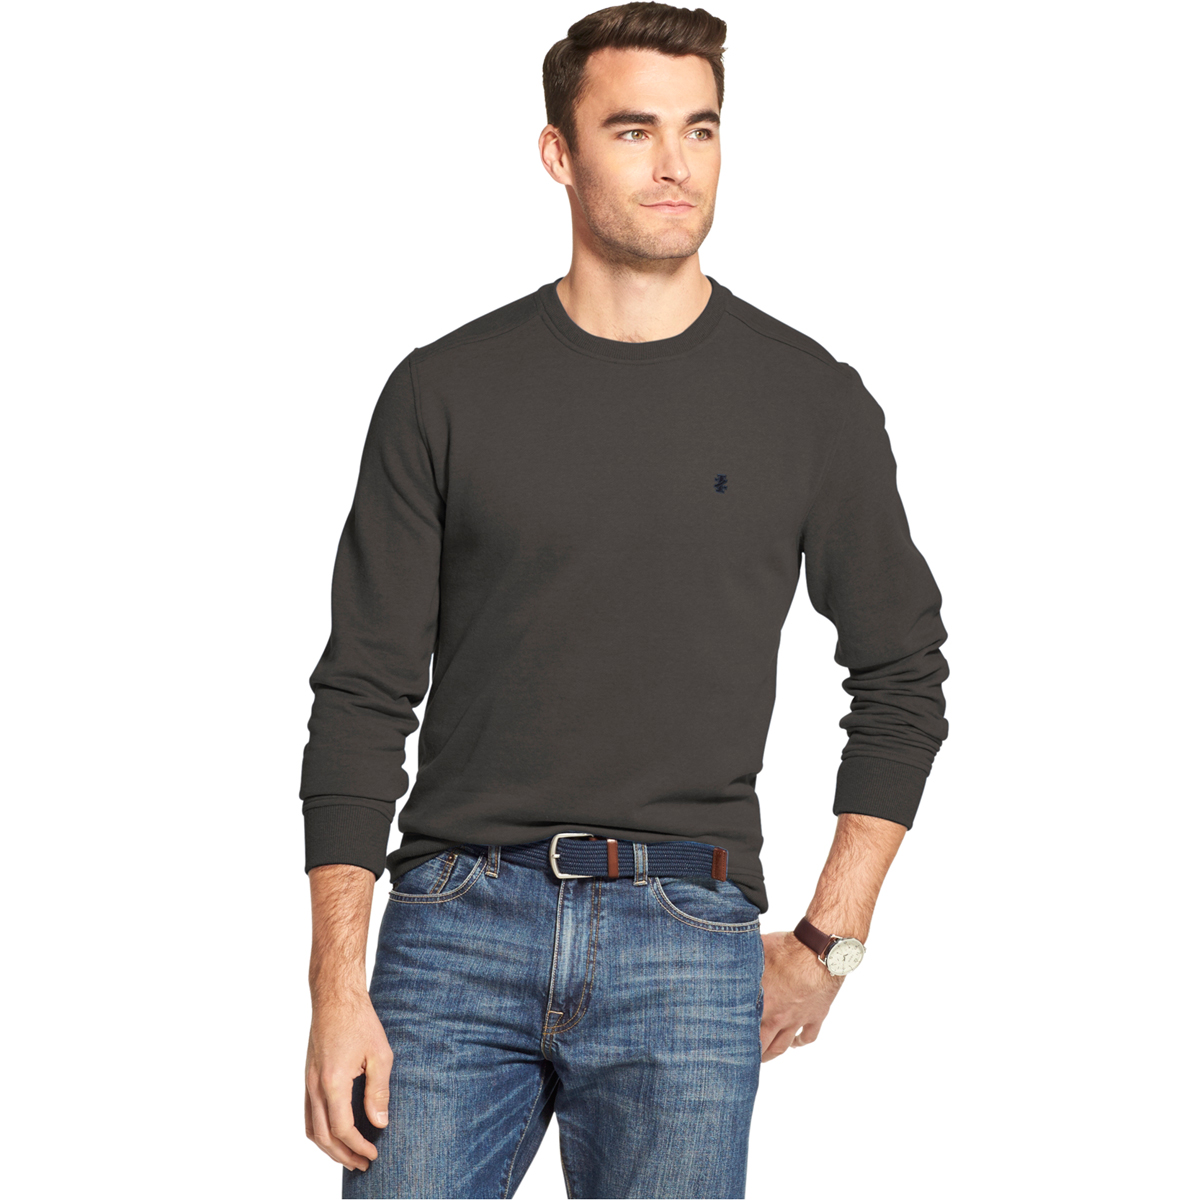 Izod Men's Long-Sleeve Supersoft Fleece Crewneck Sweater - Black, M